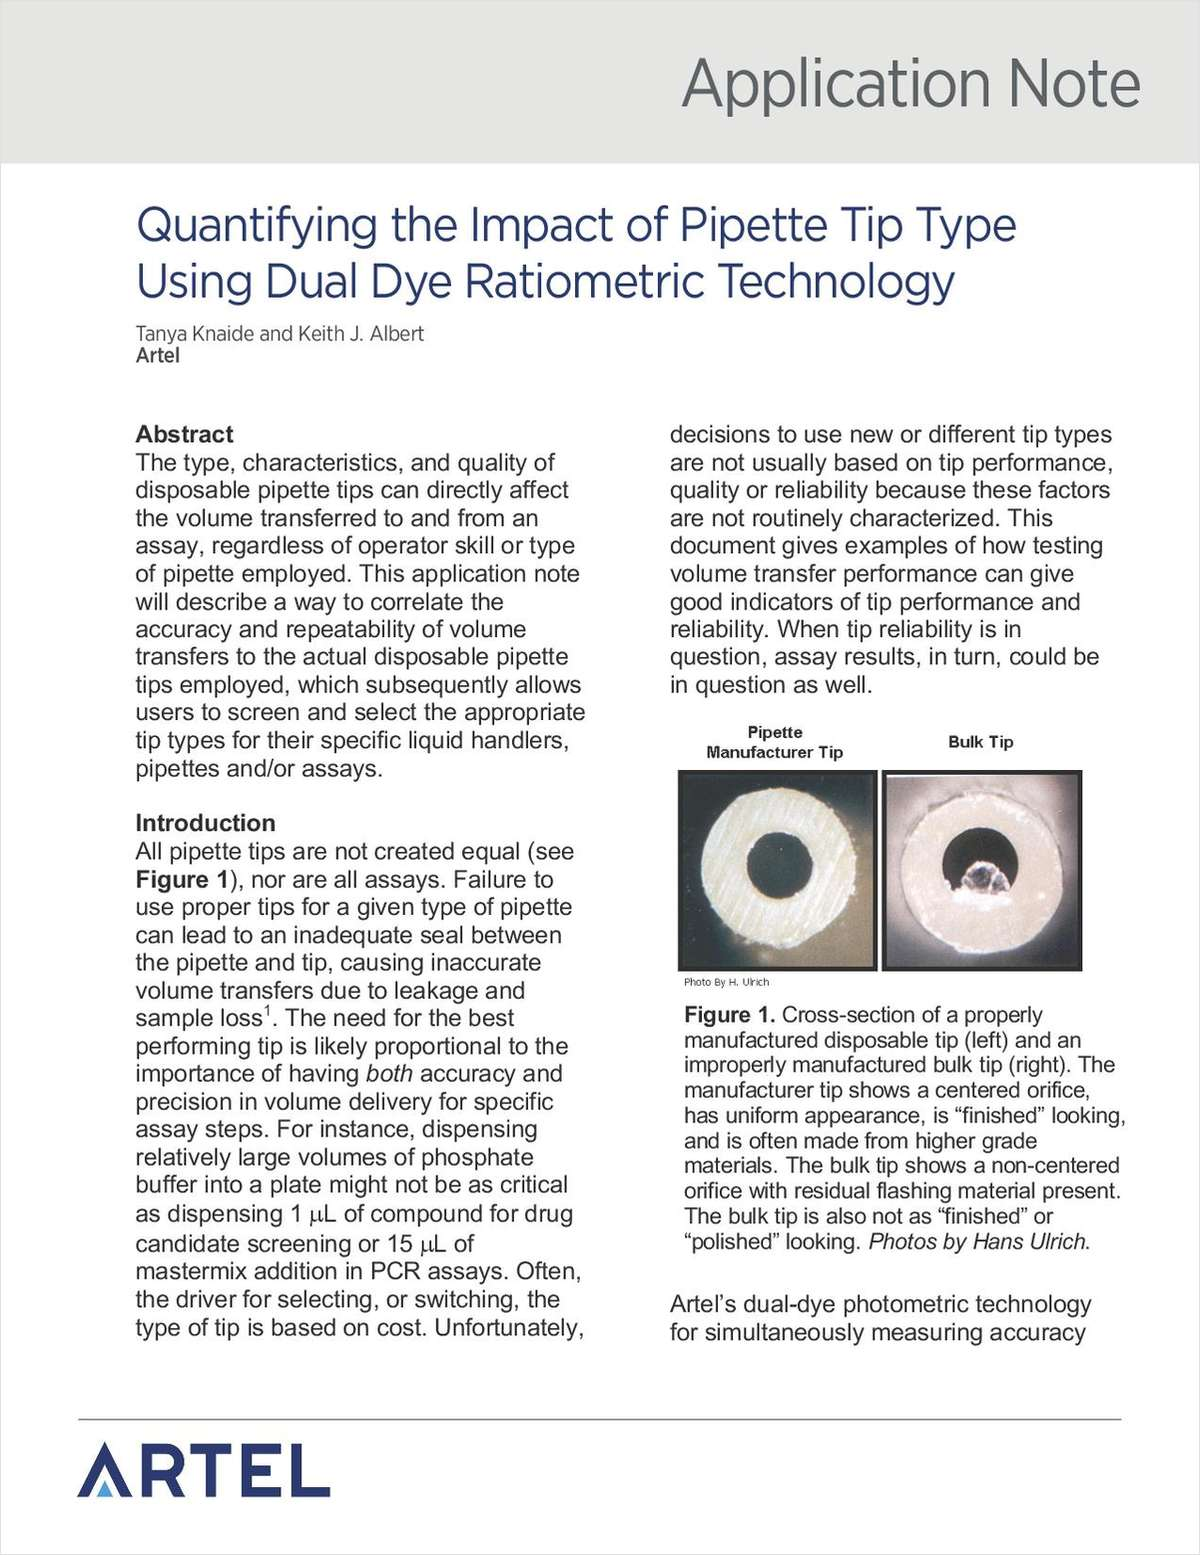 Quantifying the Impact of Pipette Tip Type Using Dual Dye Ratiometric Technology